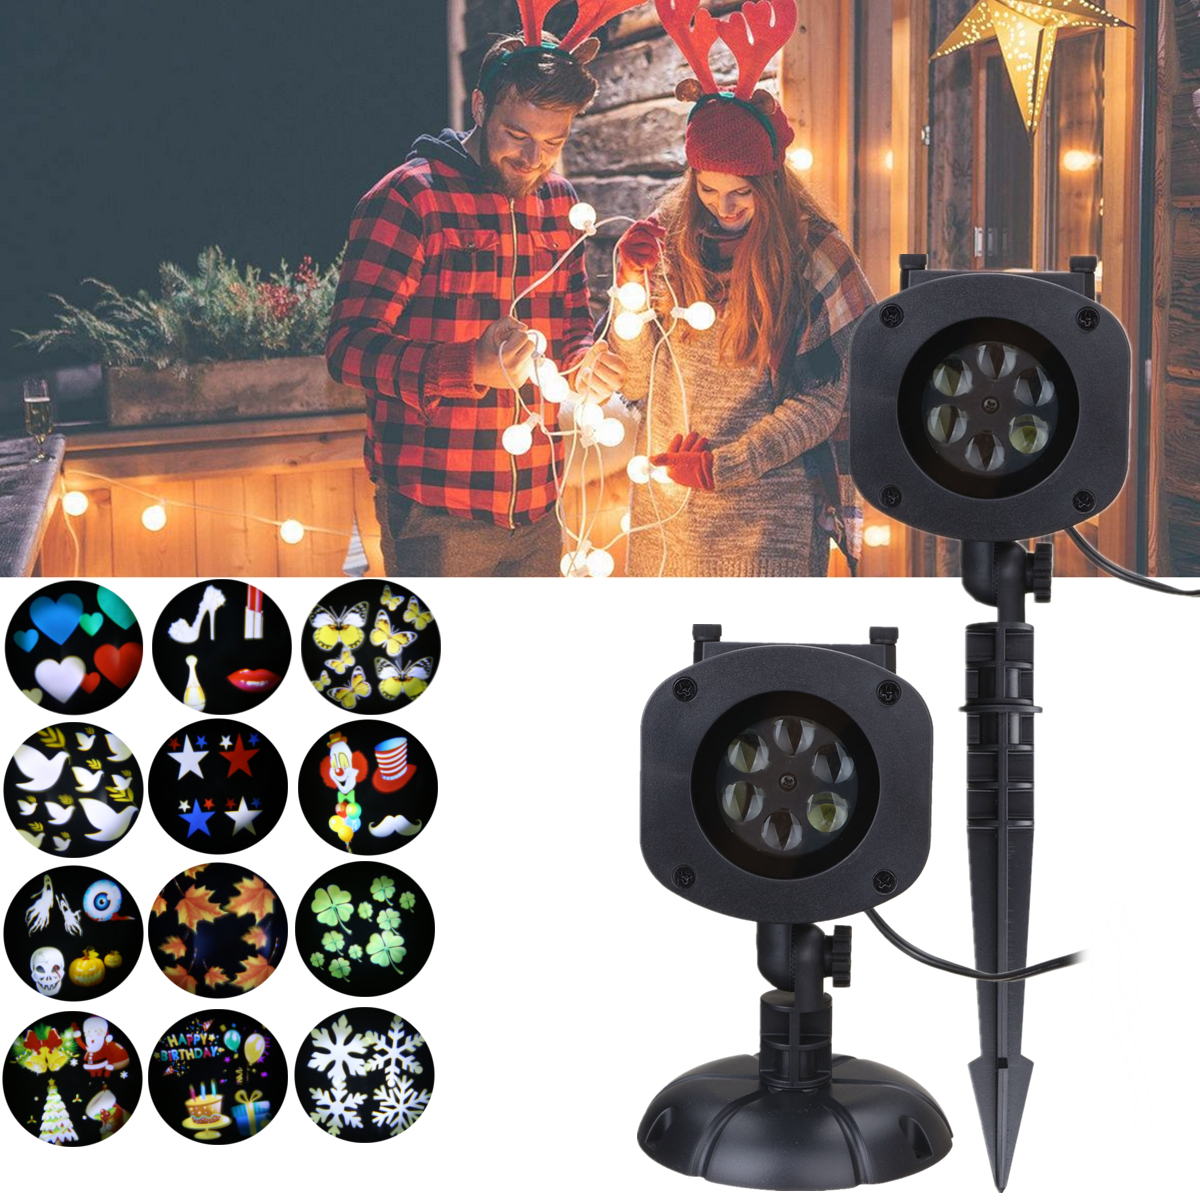 Christmas Projection Light+12 Pattern Cards+Remote Control 6 Color LED Lights Waterproof EU/US/UK/AU Plug Flash Stage Lighting free shipping us plug outdoor ip65 waterproof stage light christmas lights xmas light projector christmas uk us eu plug xx